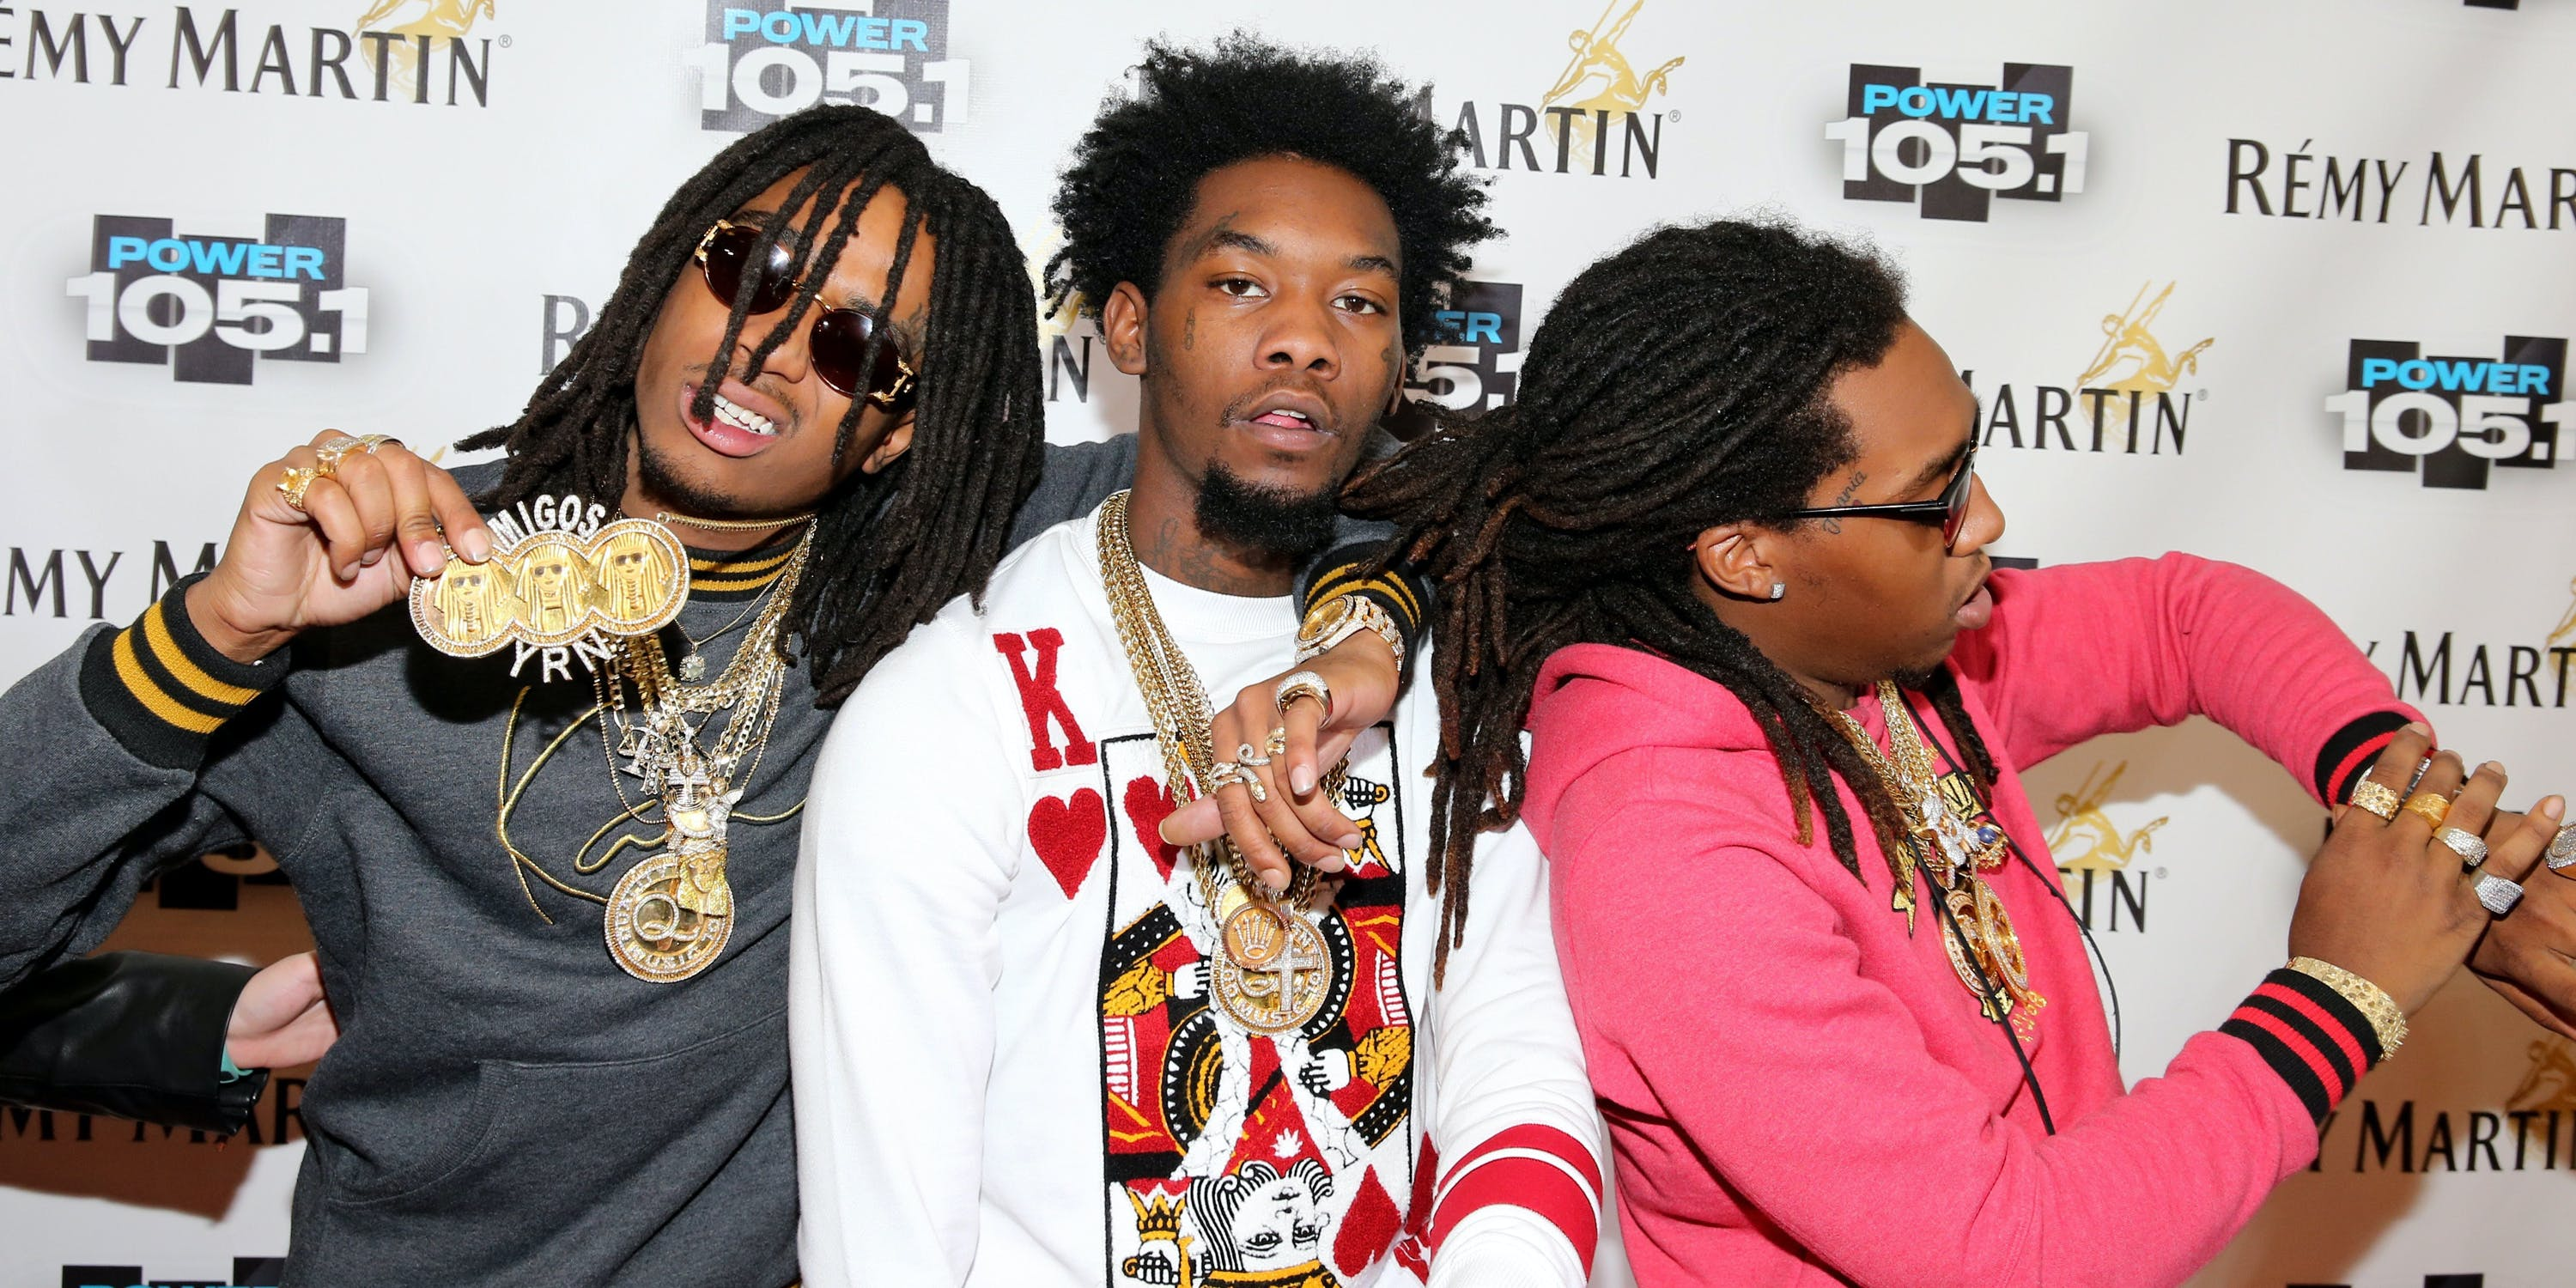 NEW YORK, NY - OCTOBER 30:  (L-R) Kirshnik 'Takeoff' Ball, Kiari 'Offset'? Cephus and Quavious 'Quavo'? Marshall of Migos attend Power 105.1's Powerhouse 2014 at Barclays Center of Brooklyn on October 30, 2014 in New York City.  (Photo by Neilson Barnard/Getty Images for Power 105.1)